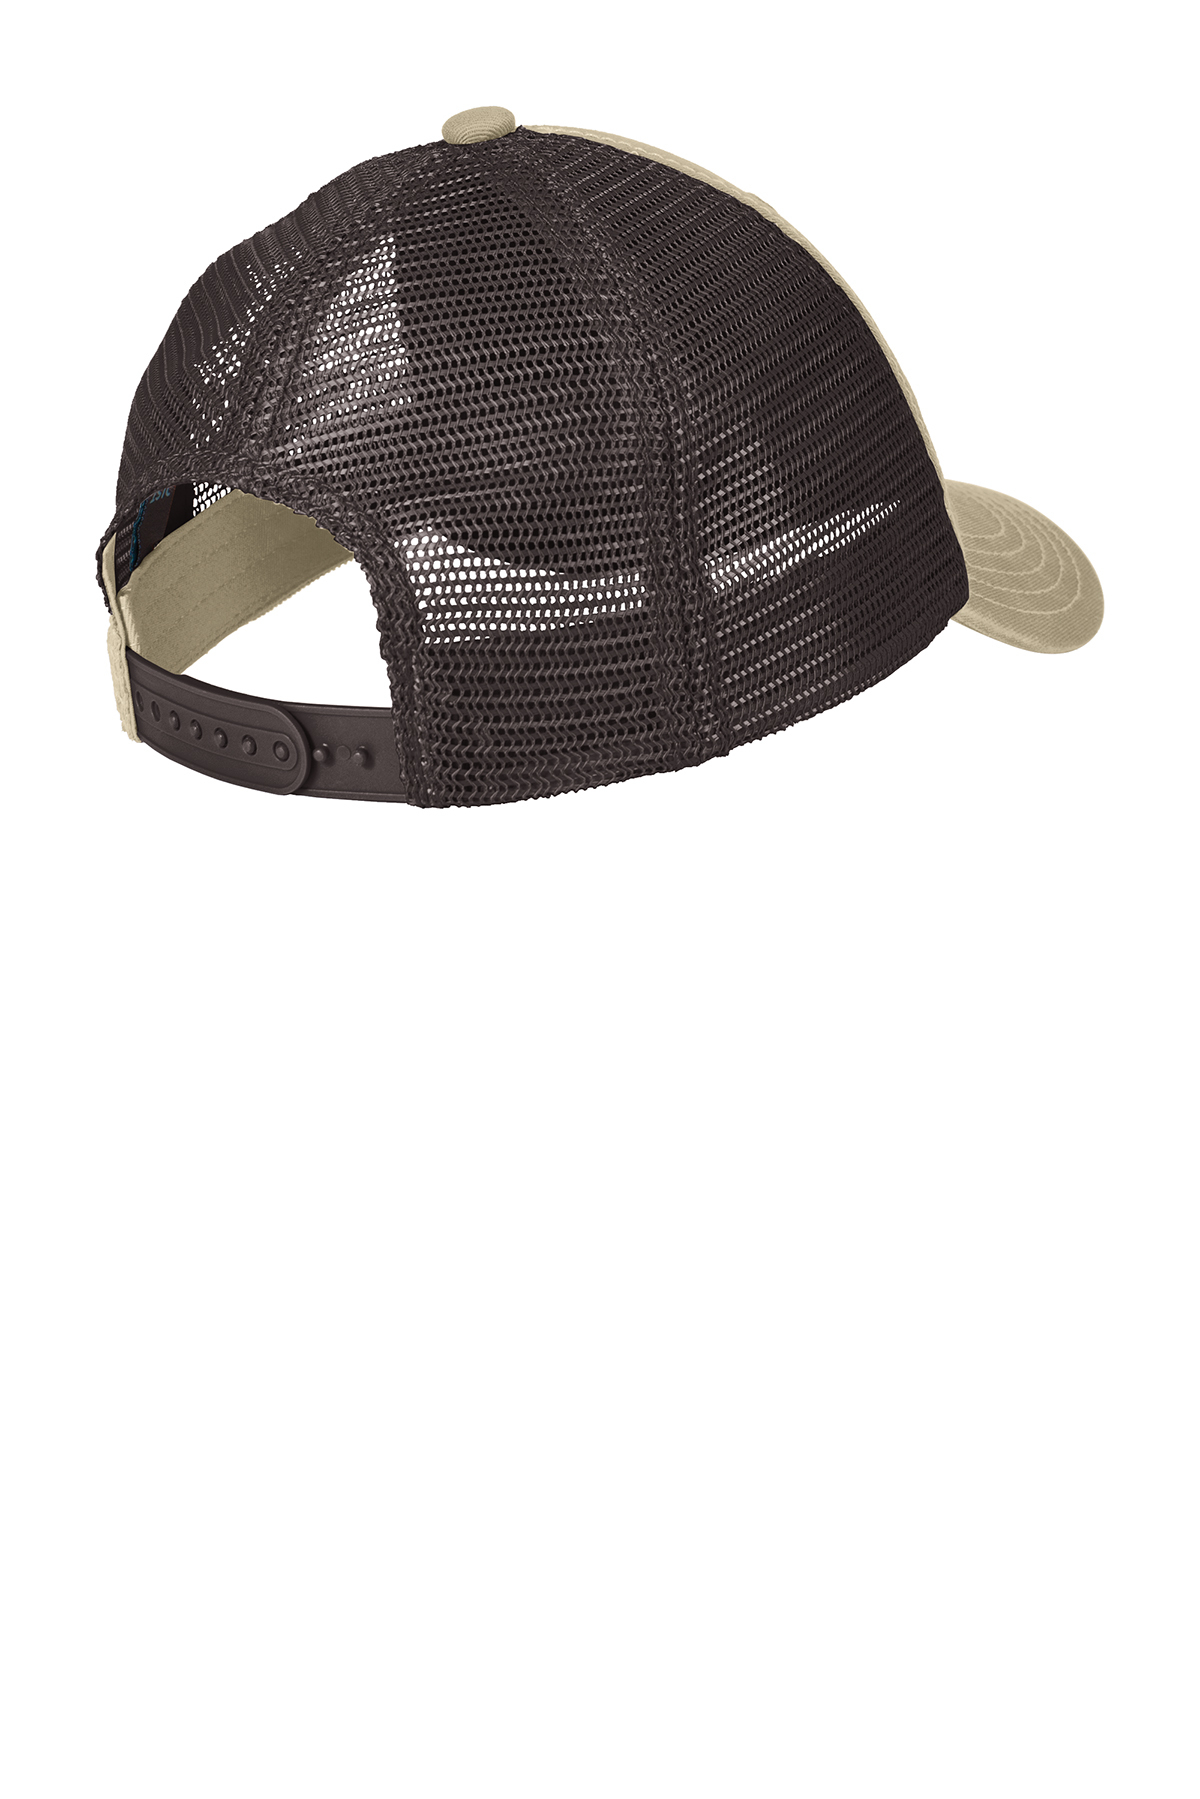 b200e2b5e63 Home · Caps · Fashion  District ® Super Soft Mesh Back Cap. A maximum of 8  logos have been uploaded. Please remove a logo from My Logos to continue